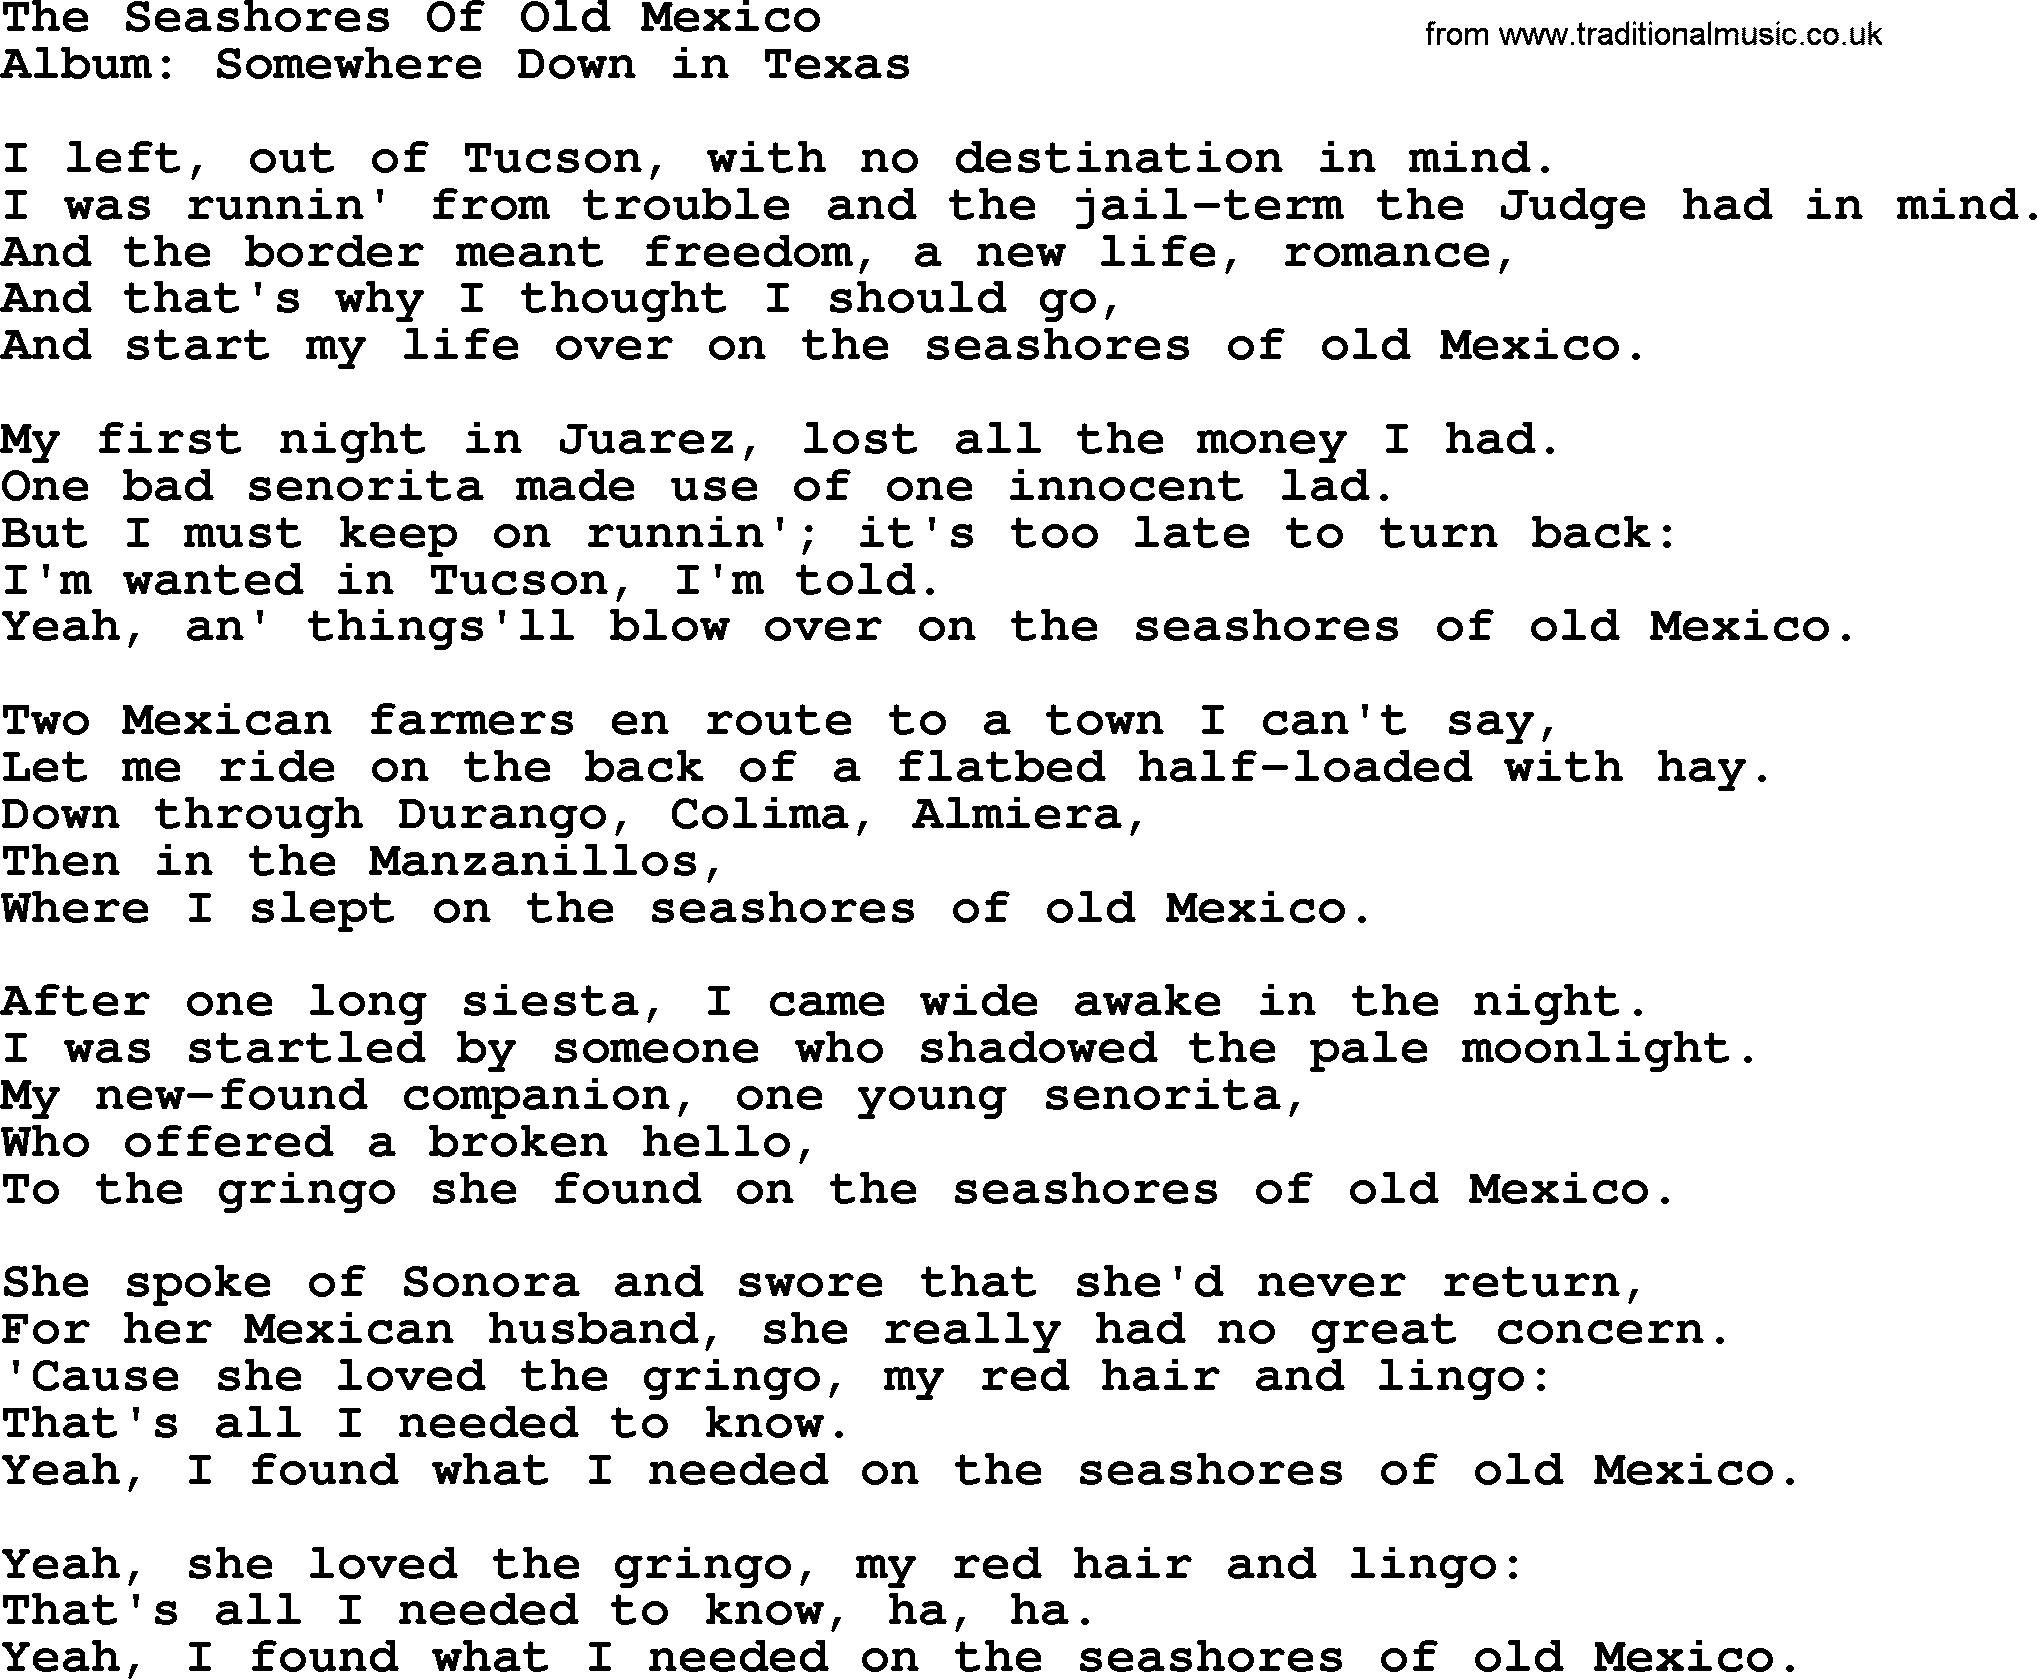 The Seashores Of Old Mexico, by George Strait - lyrics